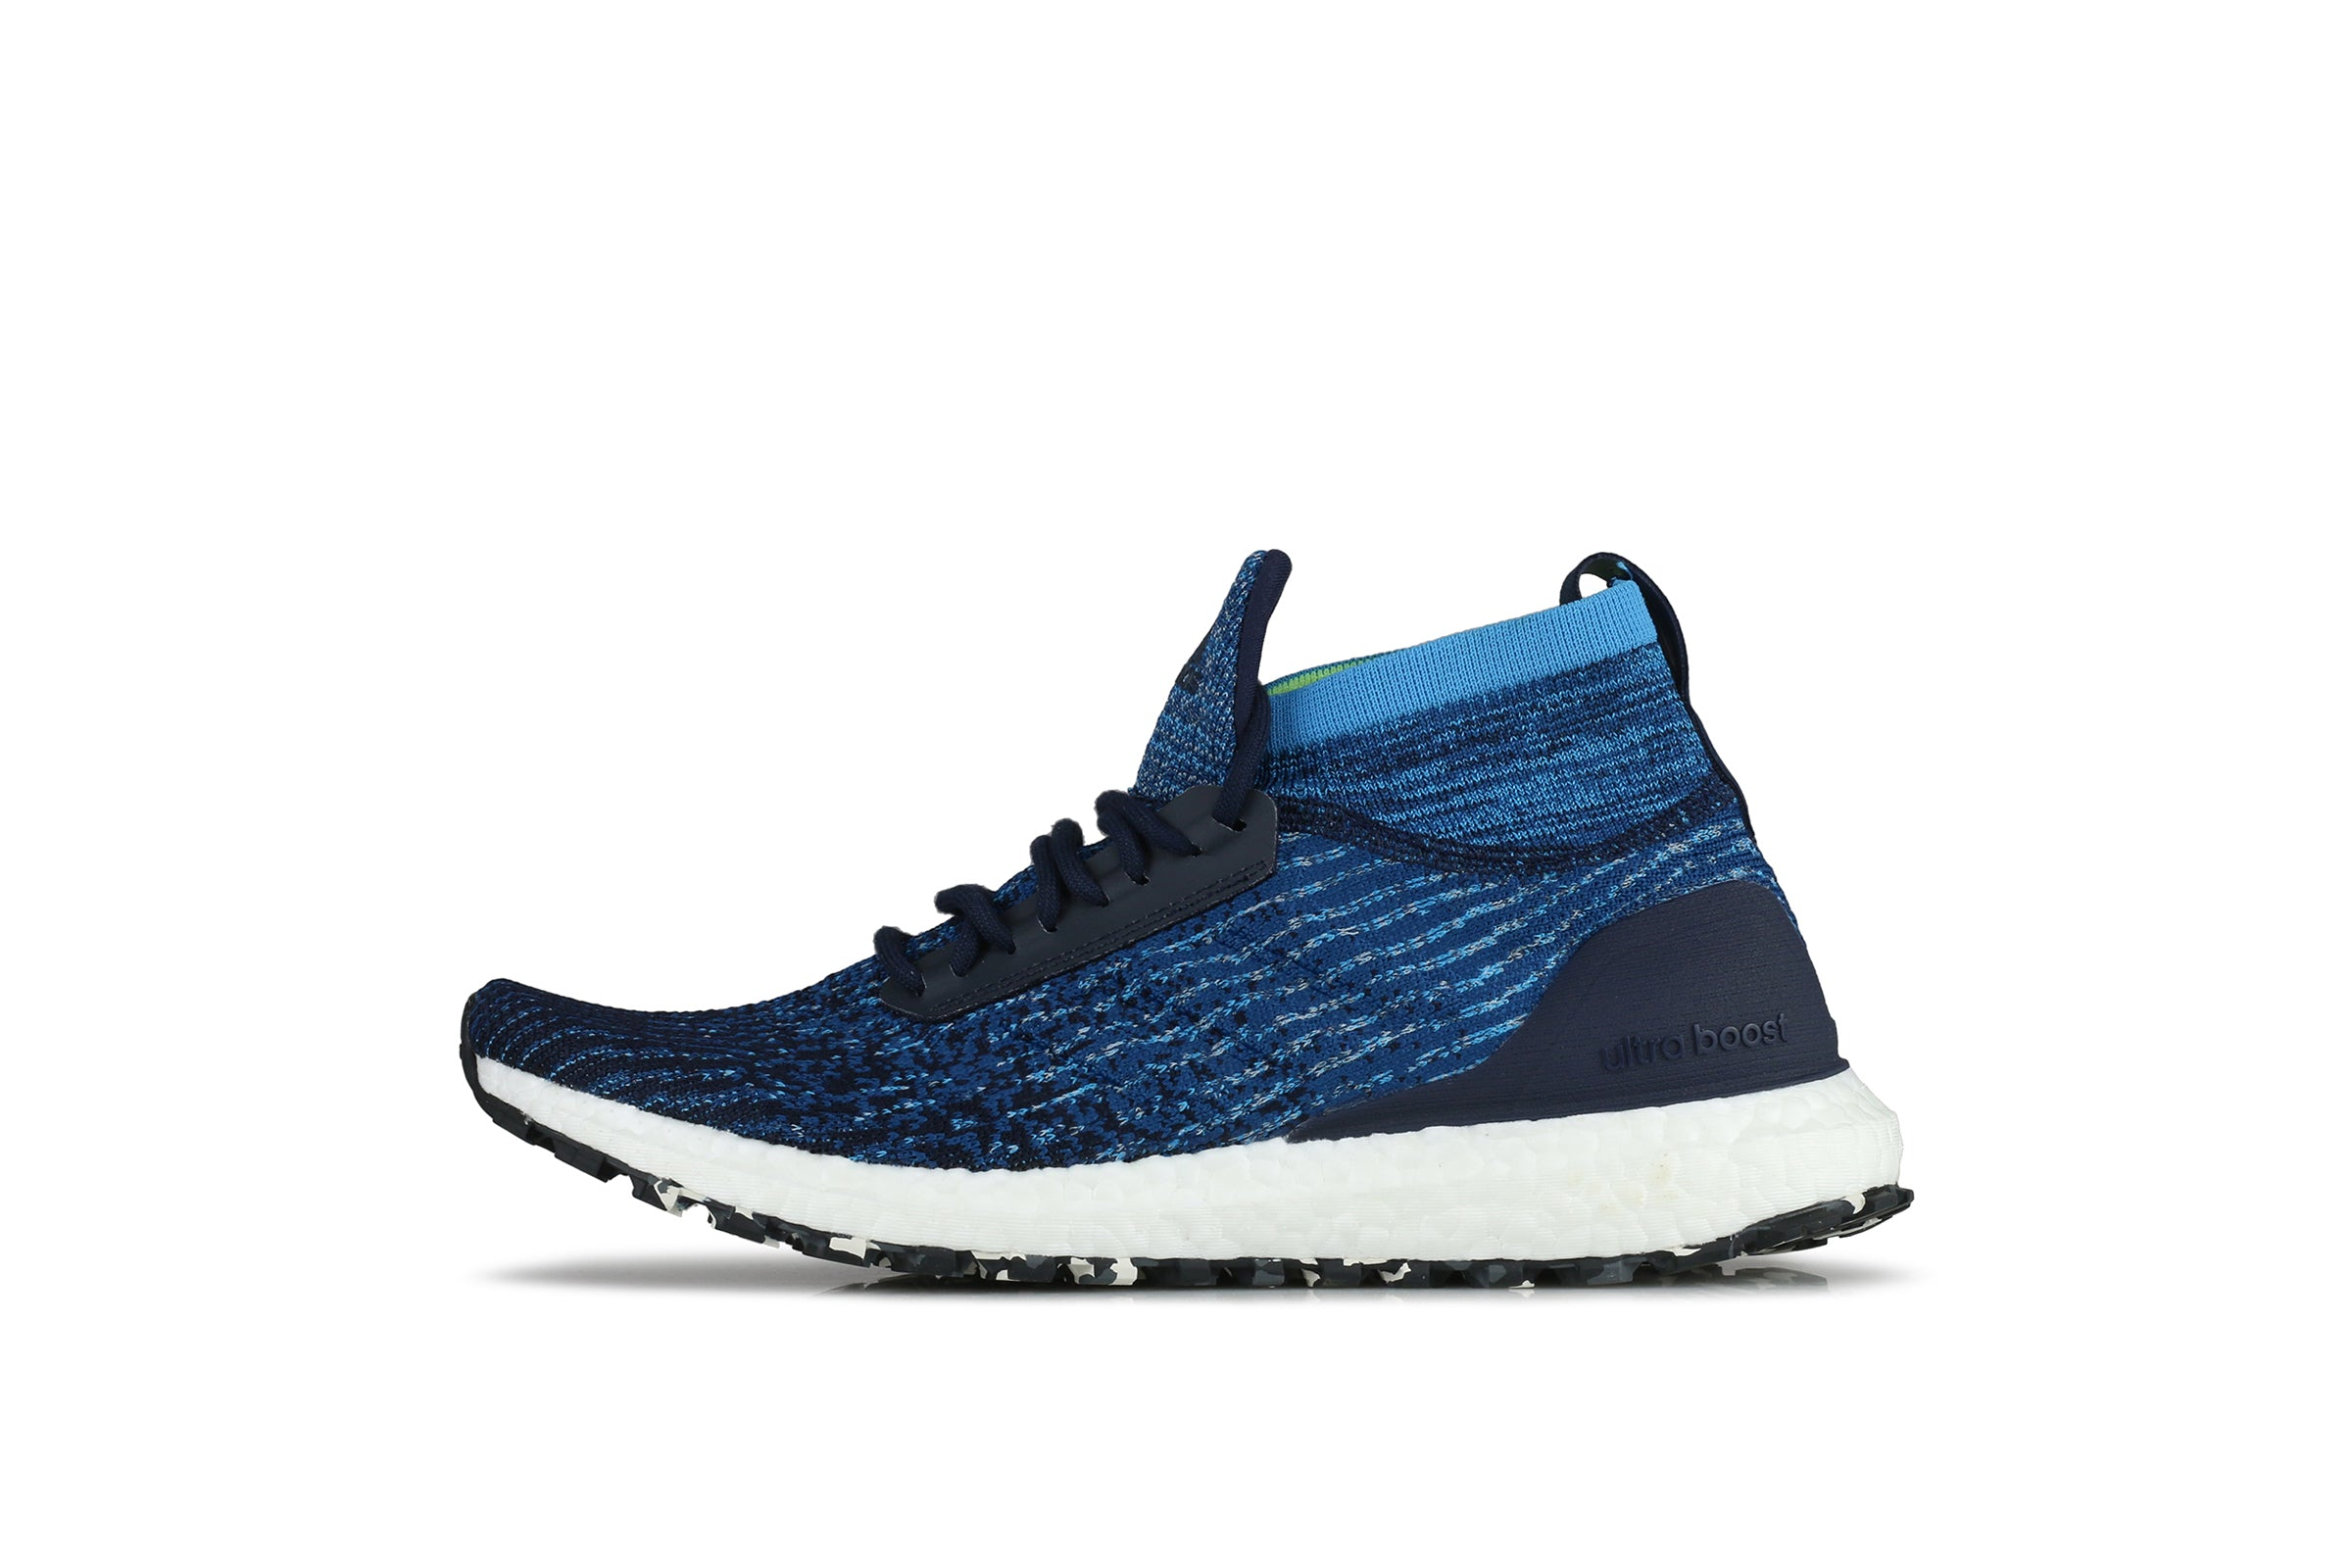 02d0b30ab8b7e Adidas Ultraboost Shoes